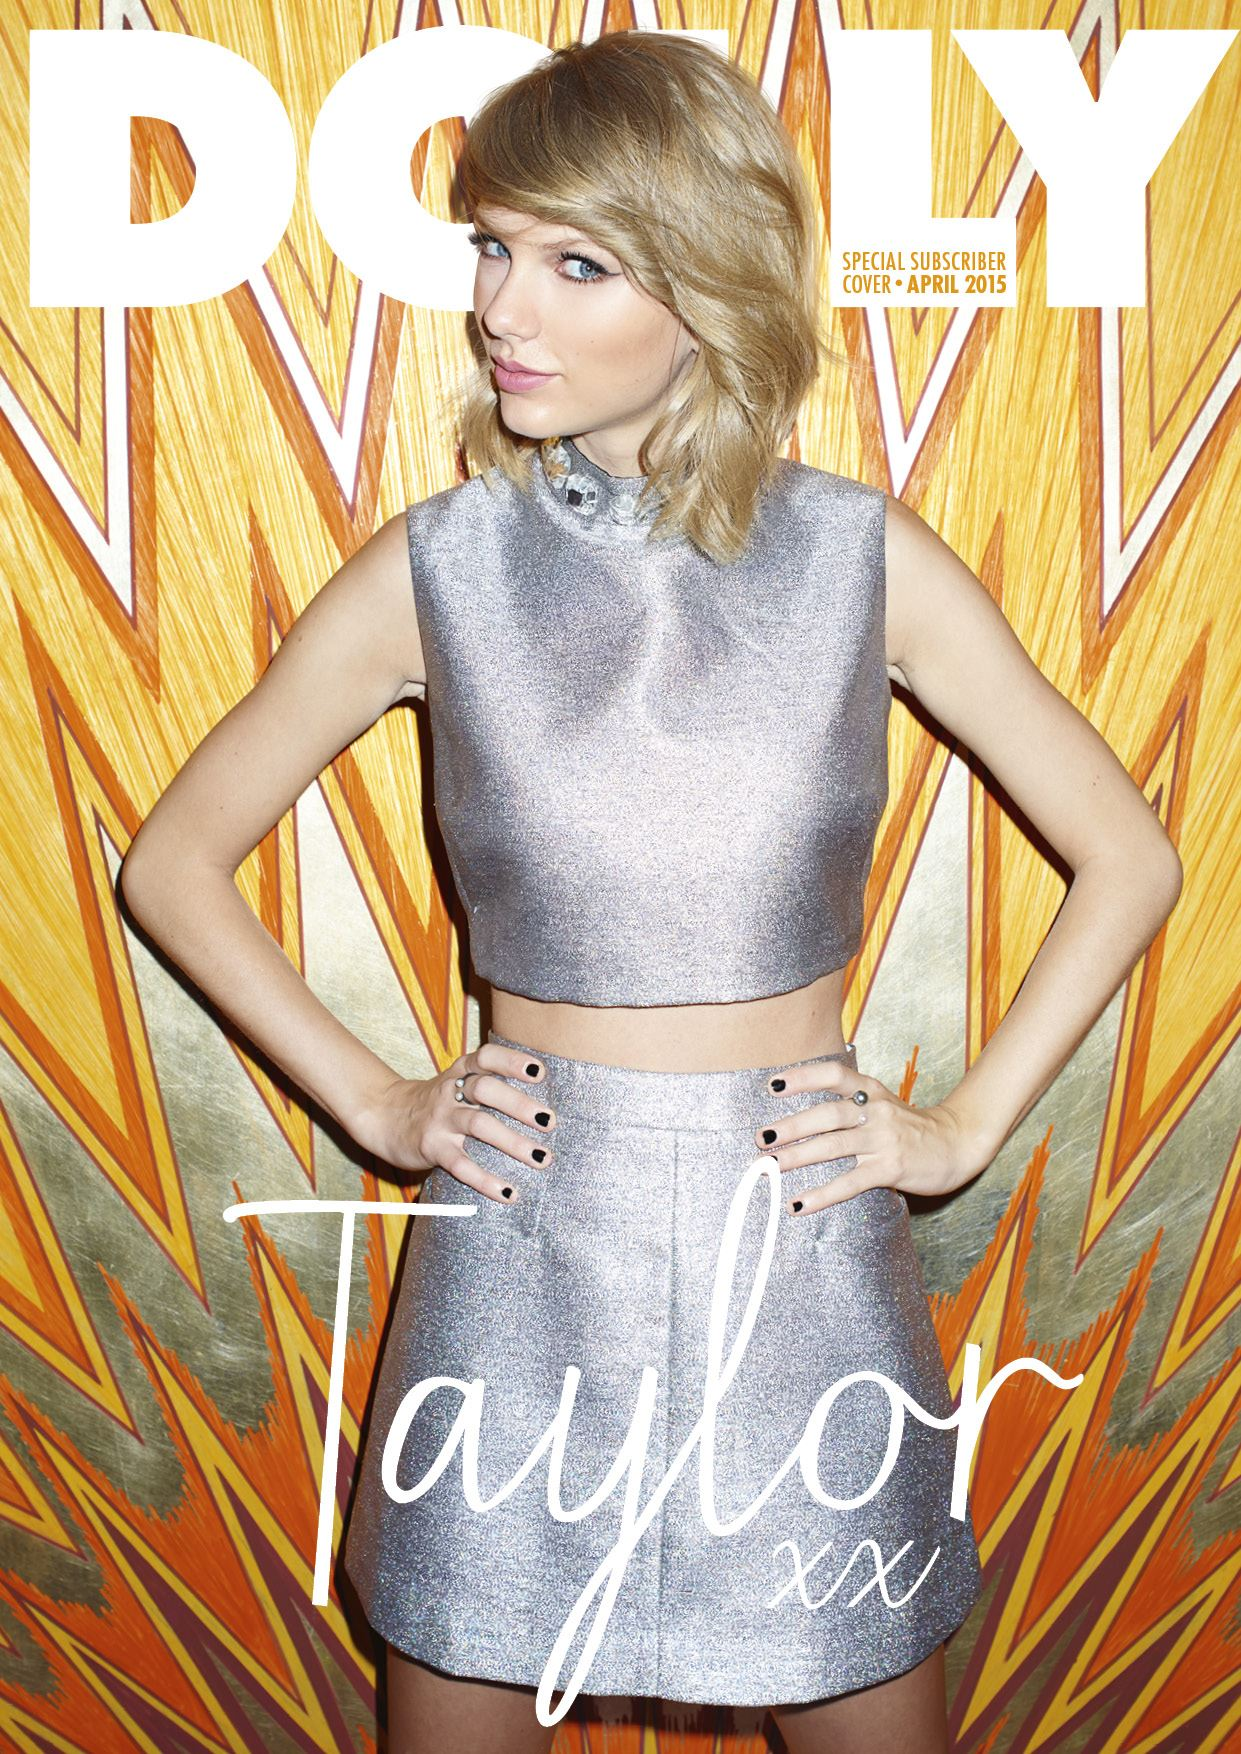 Taylor Swift - Dolly Magazine Cover (April 2015)